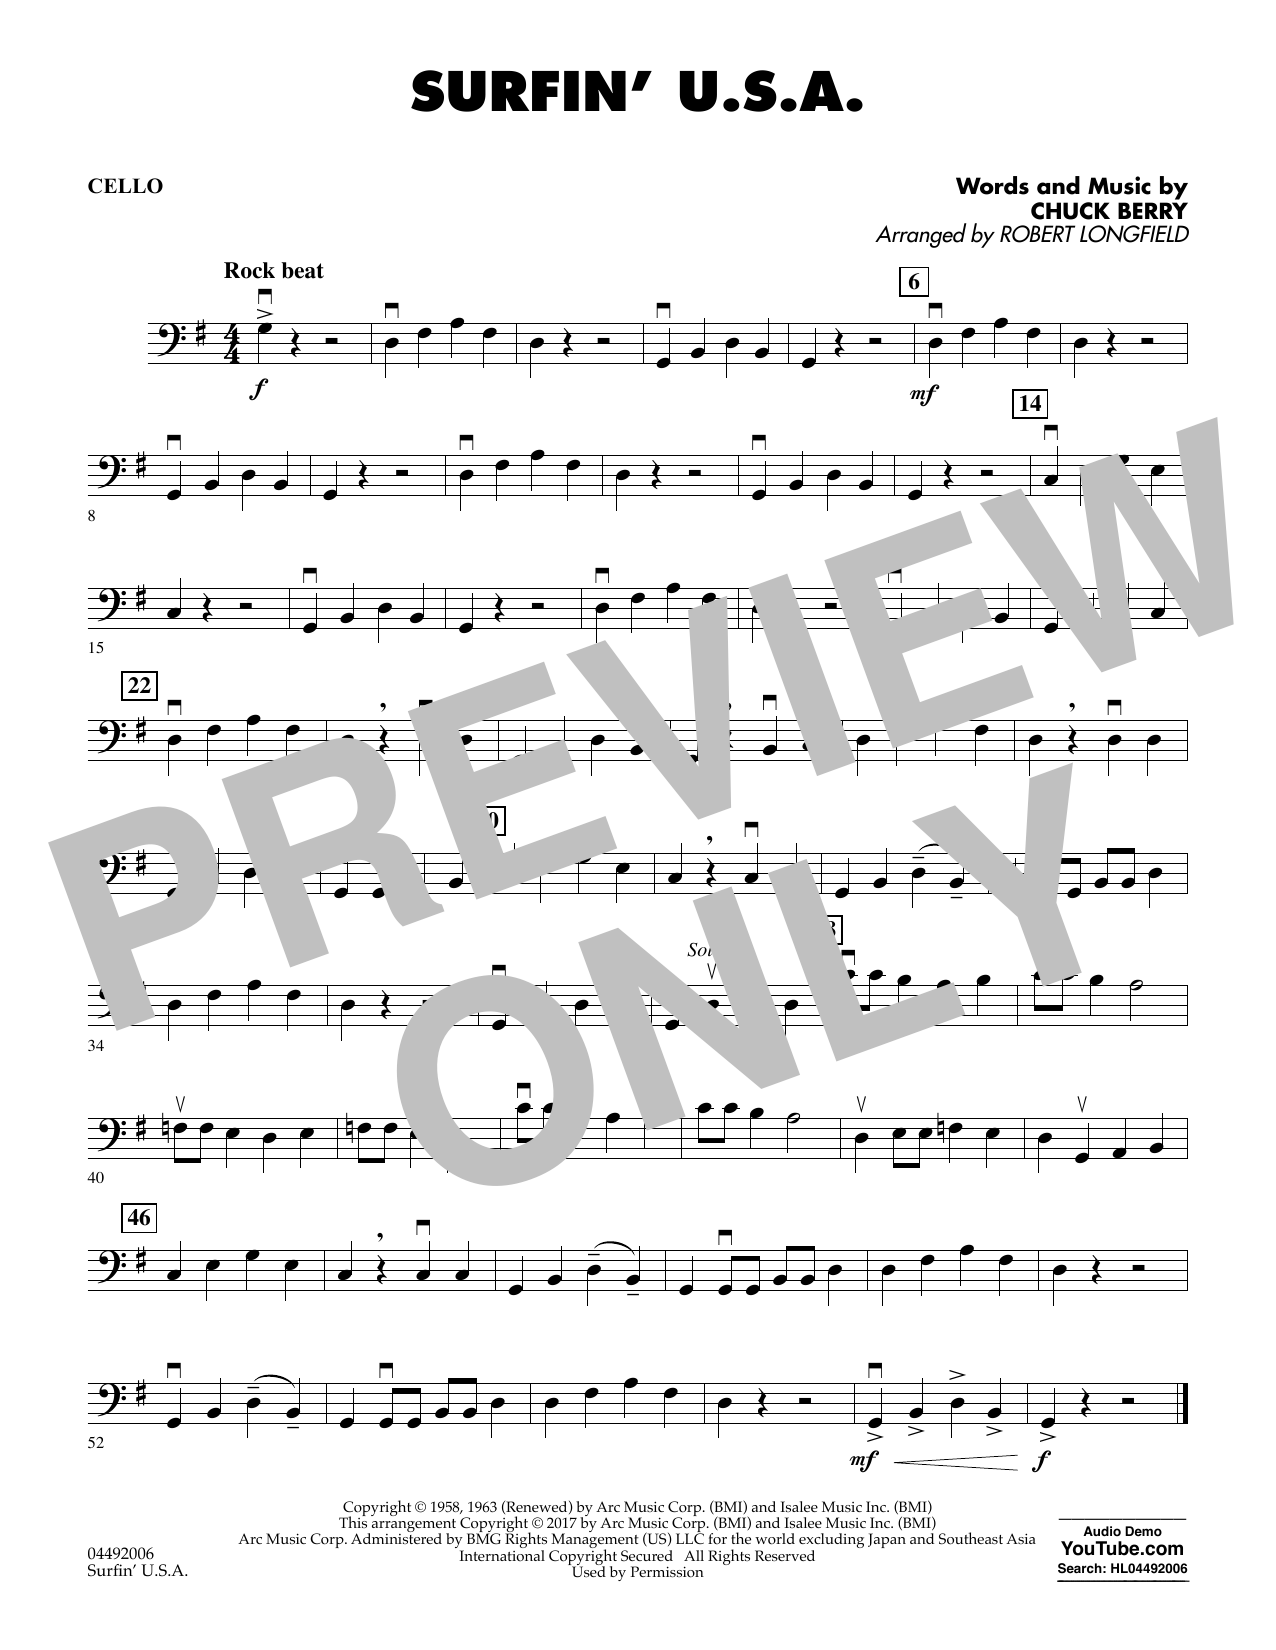 Robert Longfield Surfin' U.S.A. - Cello sheet music notes and chords. Download Printable PDF.